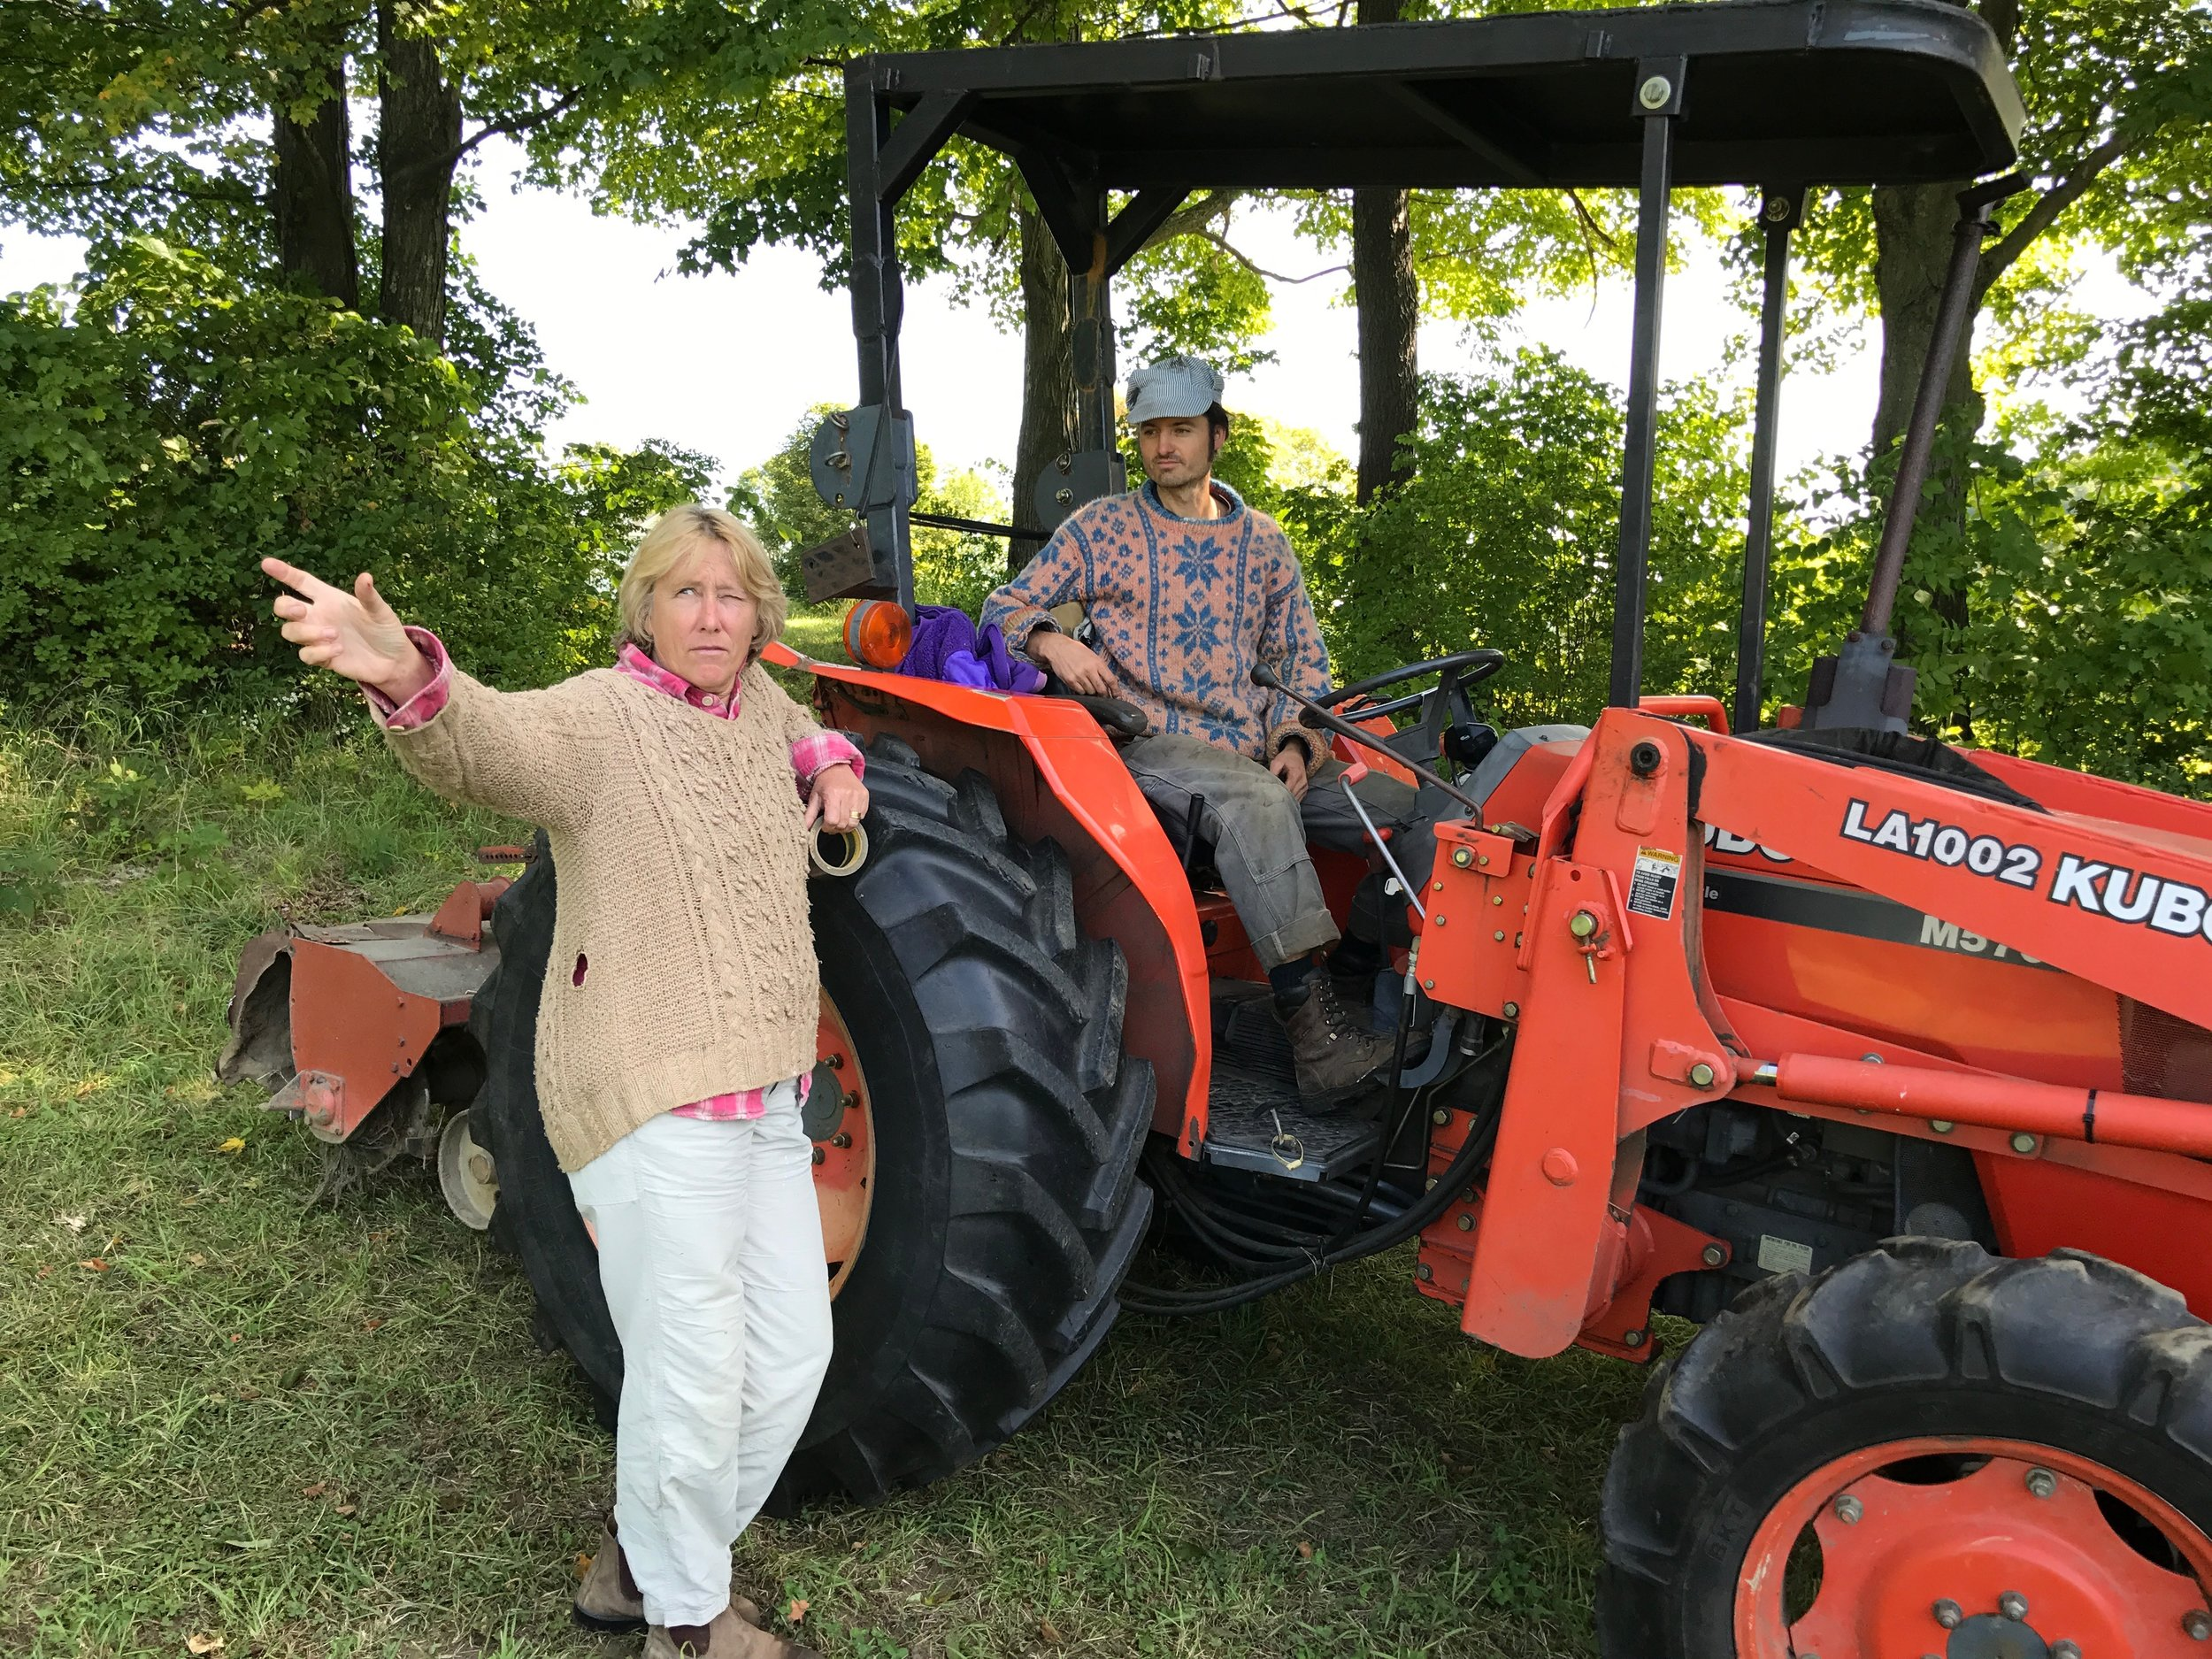 47 S with Chris, tractor.jpg